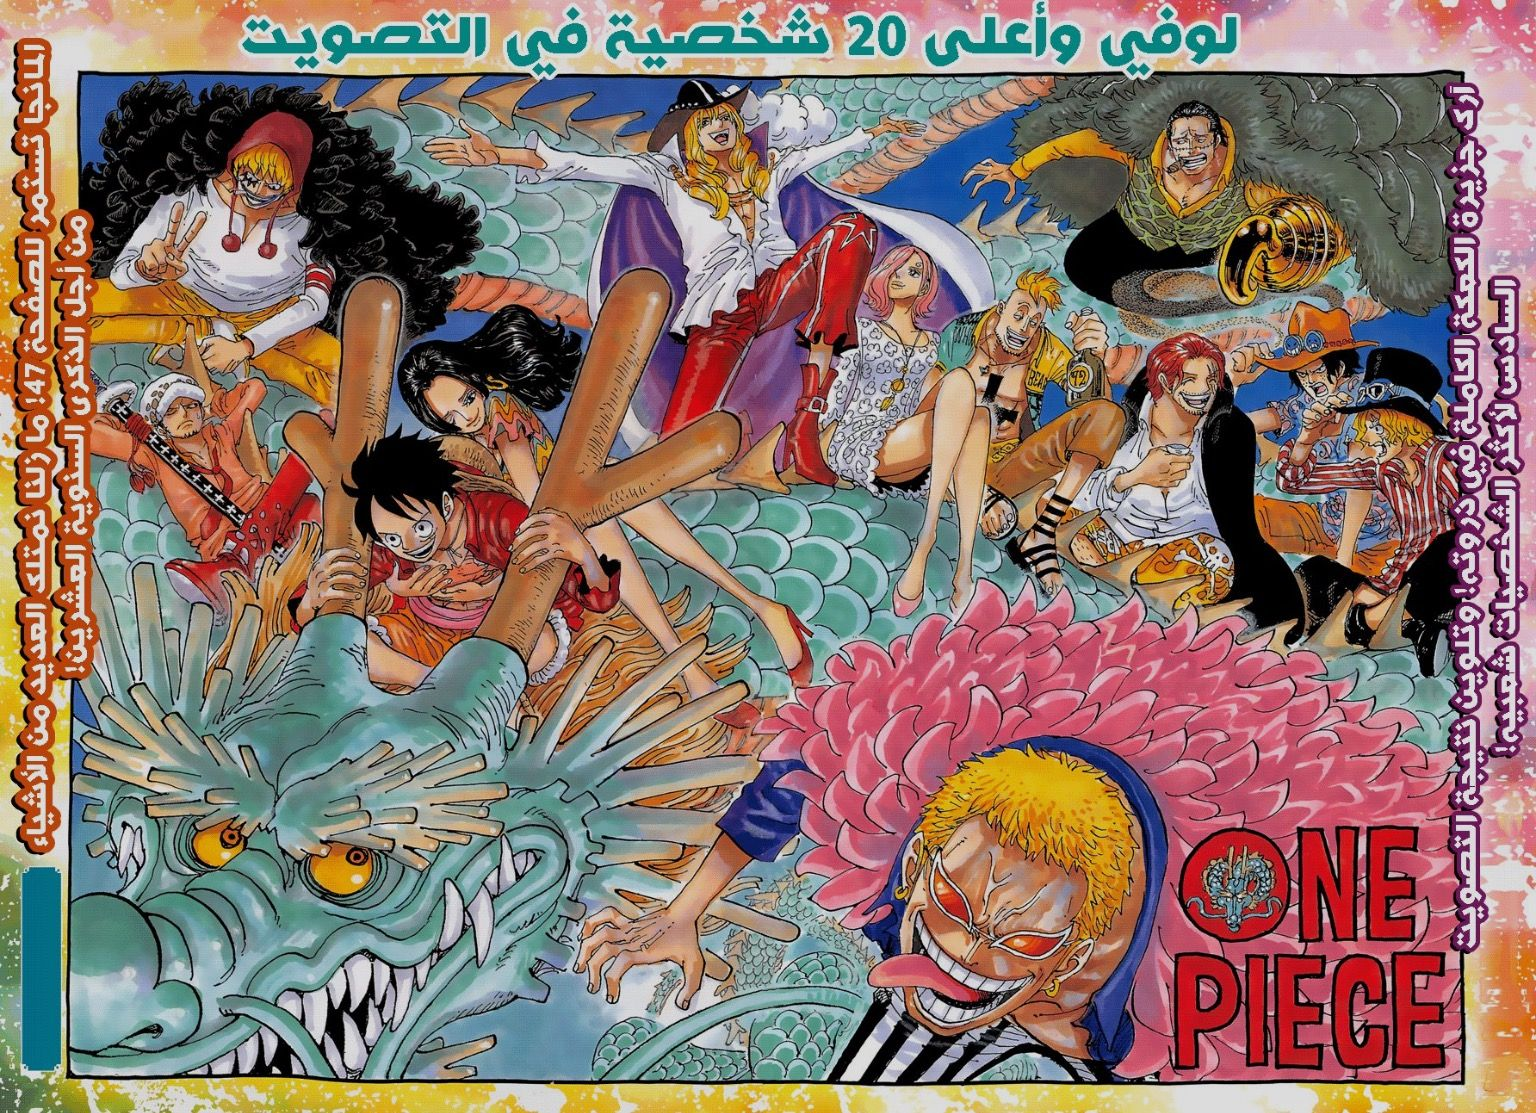 Pin by ღ♪☆ħɑ̝̚₡к̝̚€Я☆♪ღ on One piece One piece chapter